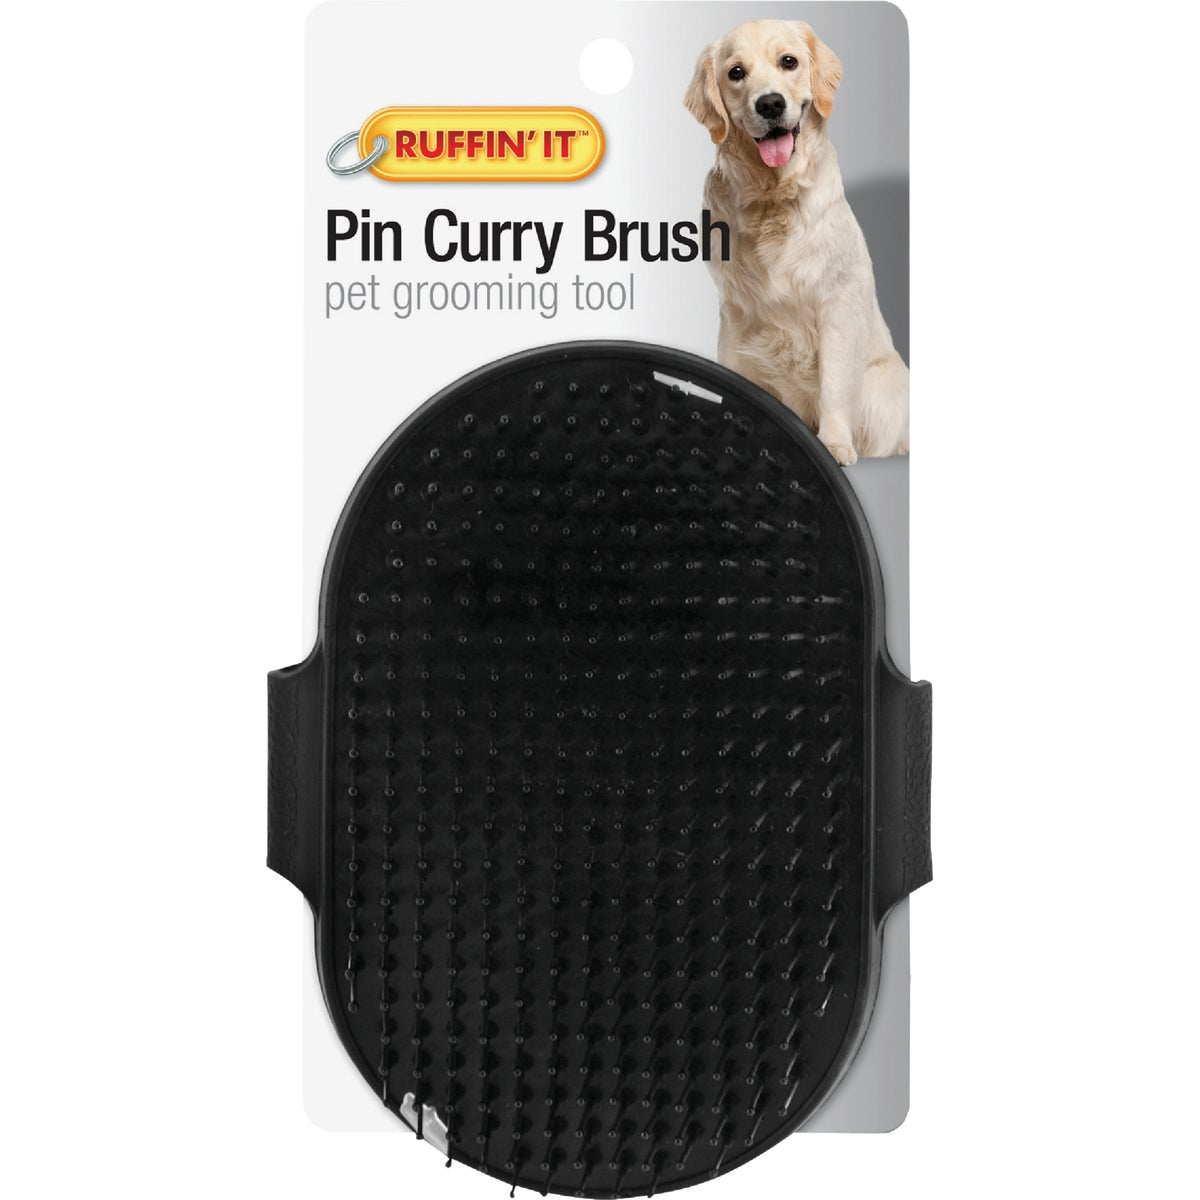 PALM PIN CURRY BRUSH - 19781 by Westminster Pet